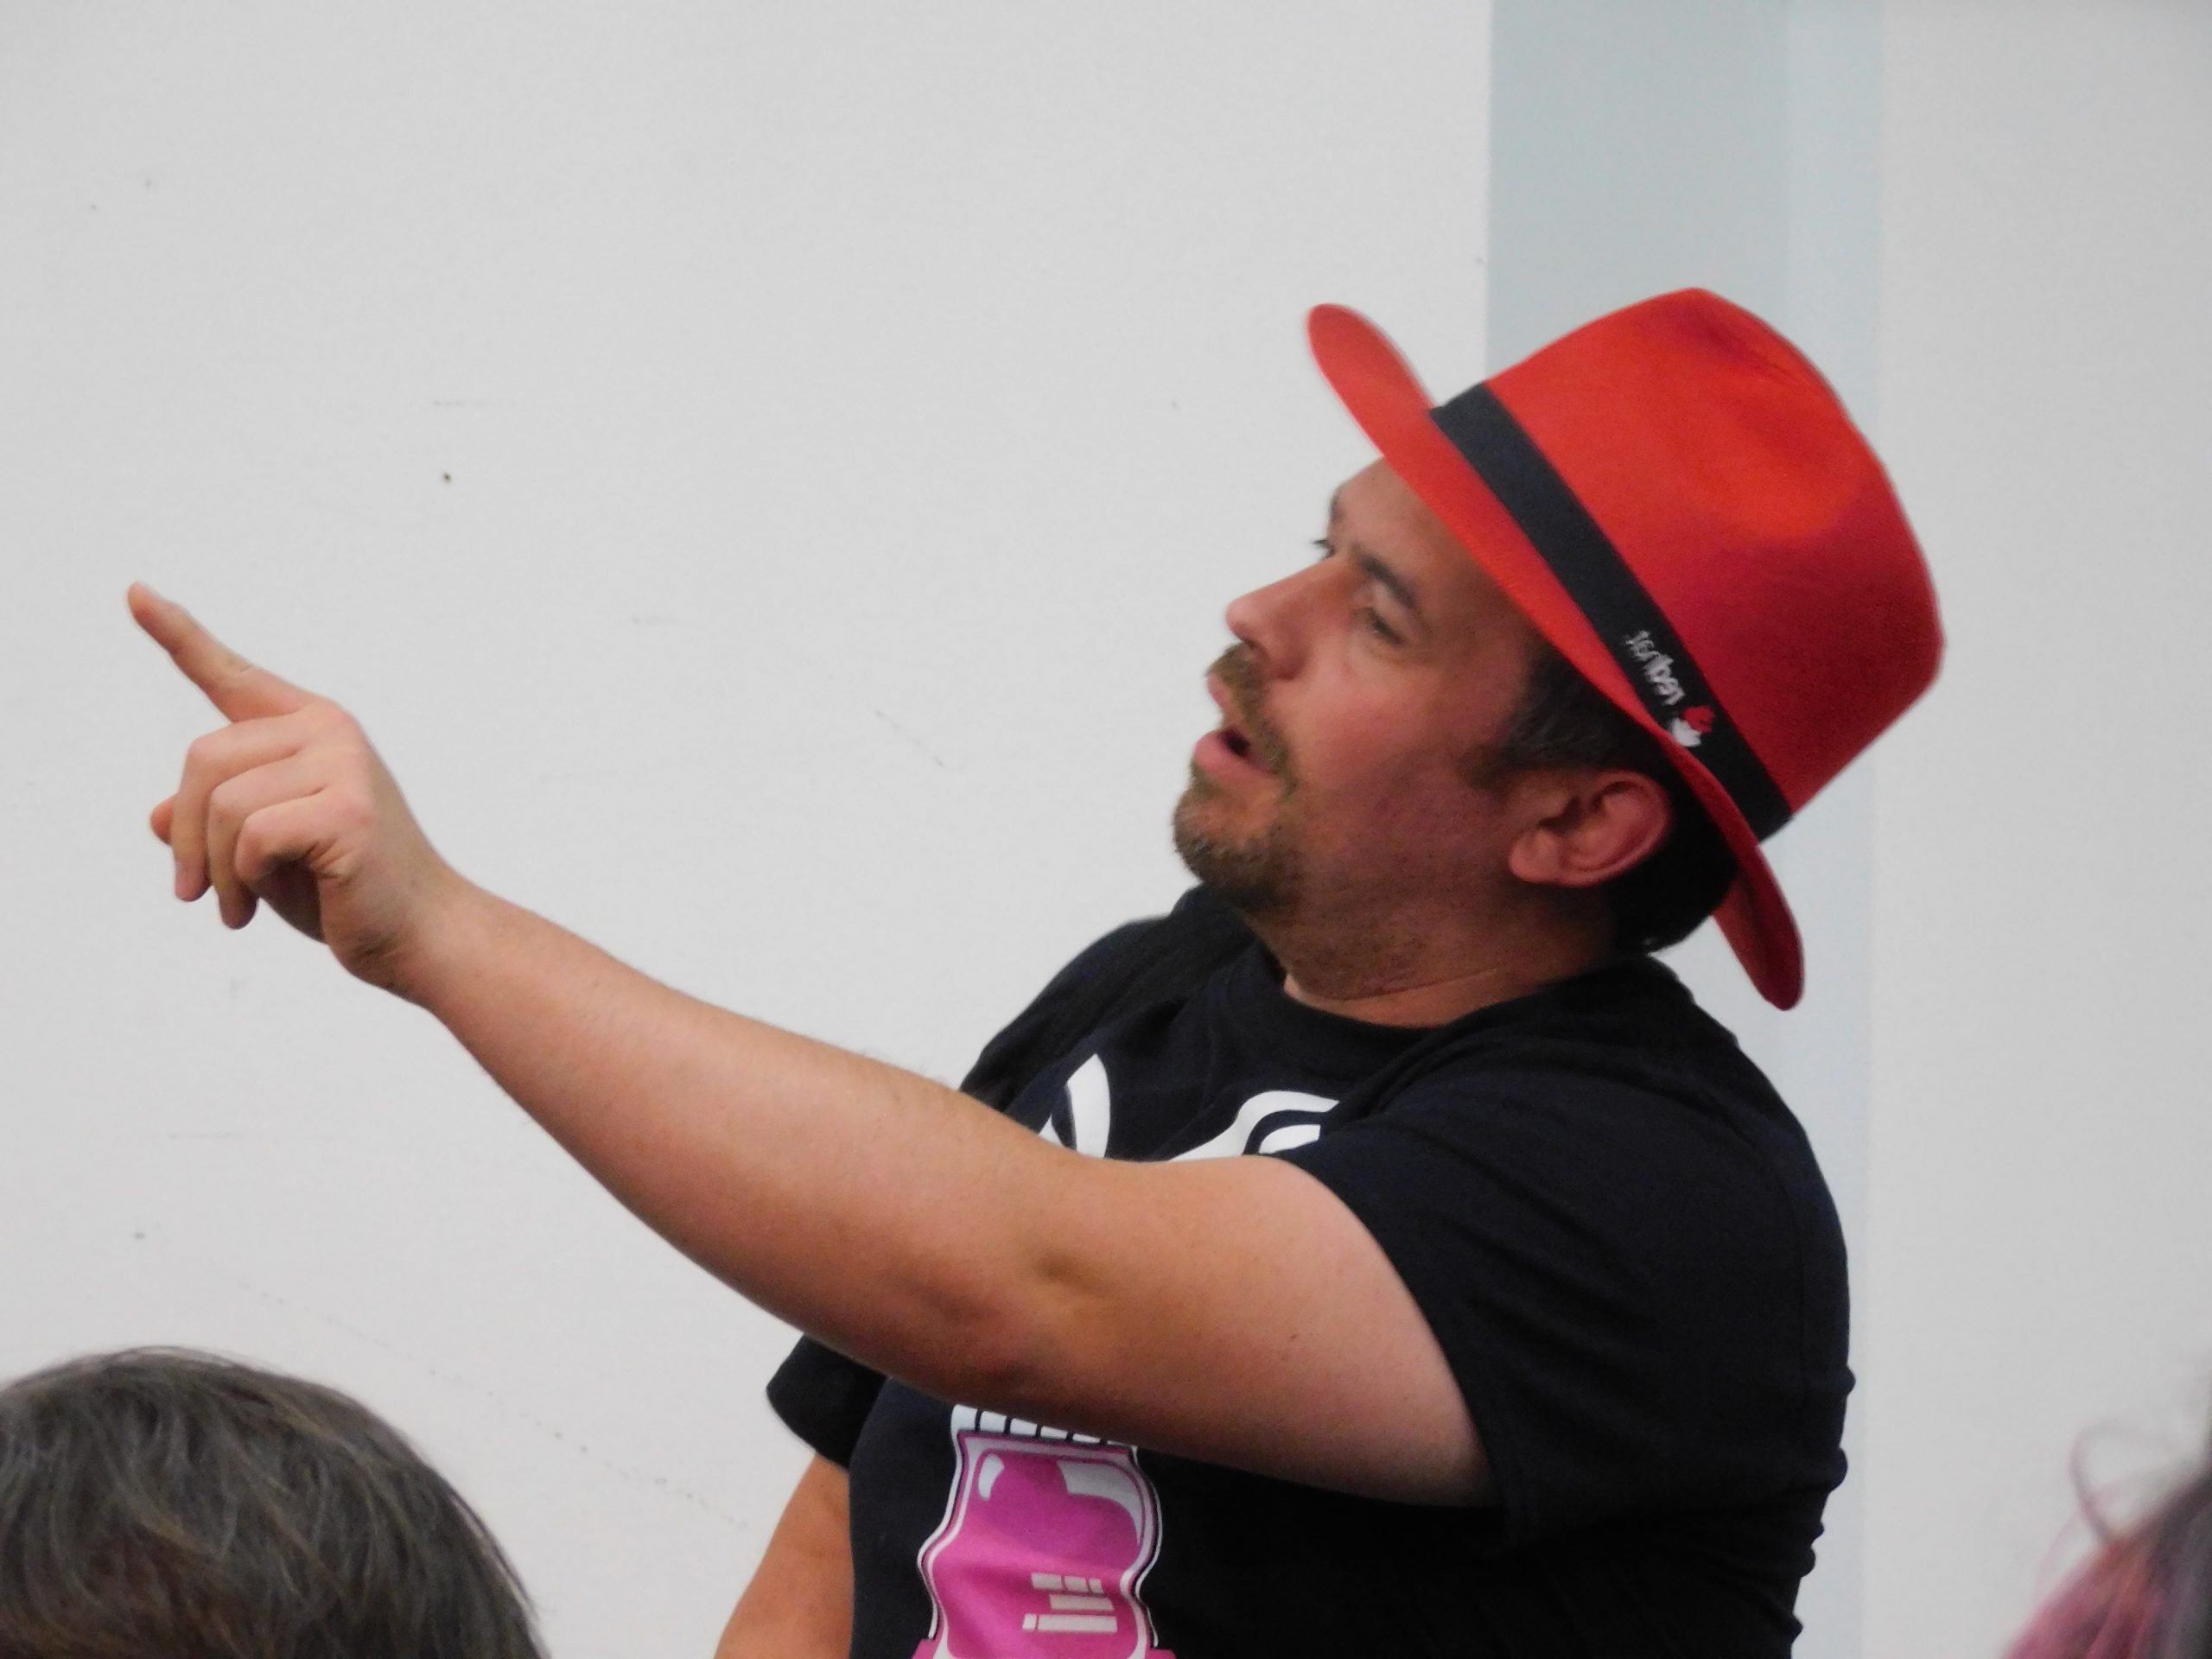 Picture of Jon wearing a Red Hat